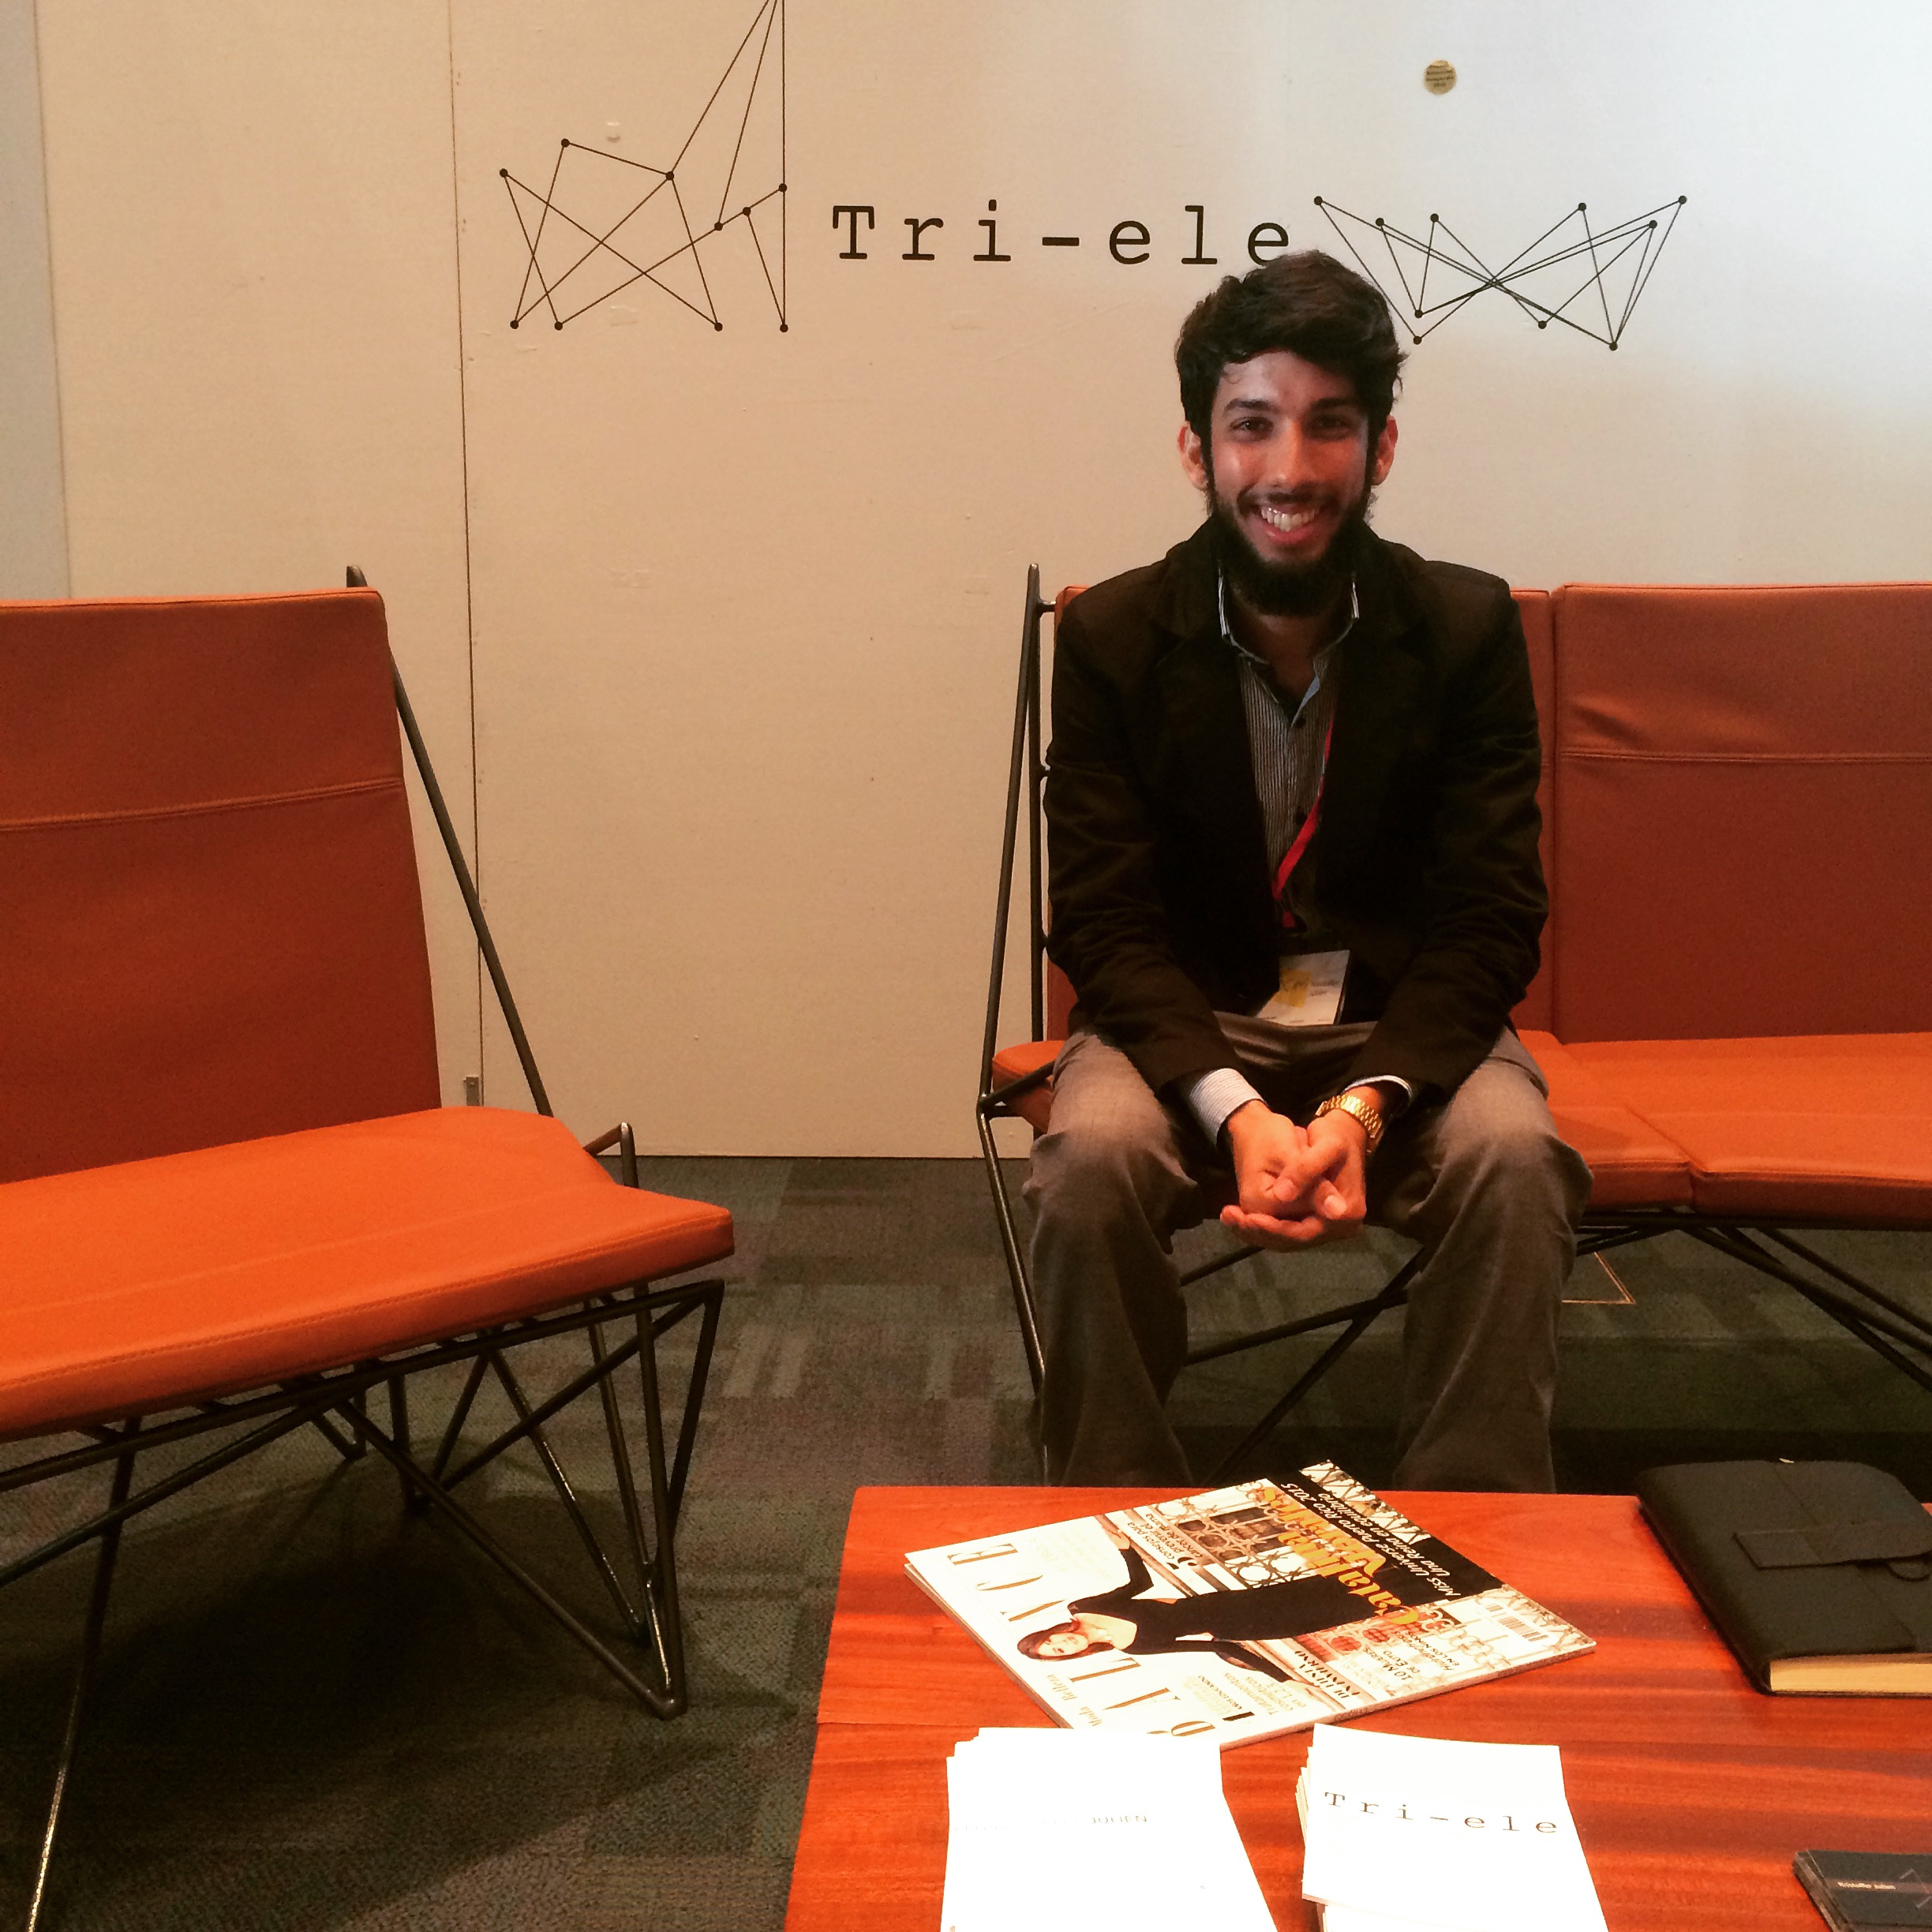 Industrial Designer Kristoffer Julien and his Tri-ele set of Iron furniture sold on first day at Boom Fair 2015